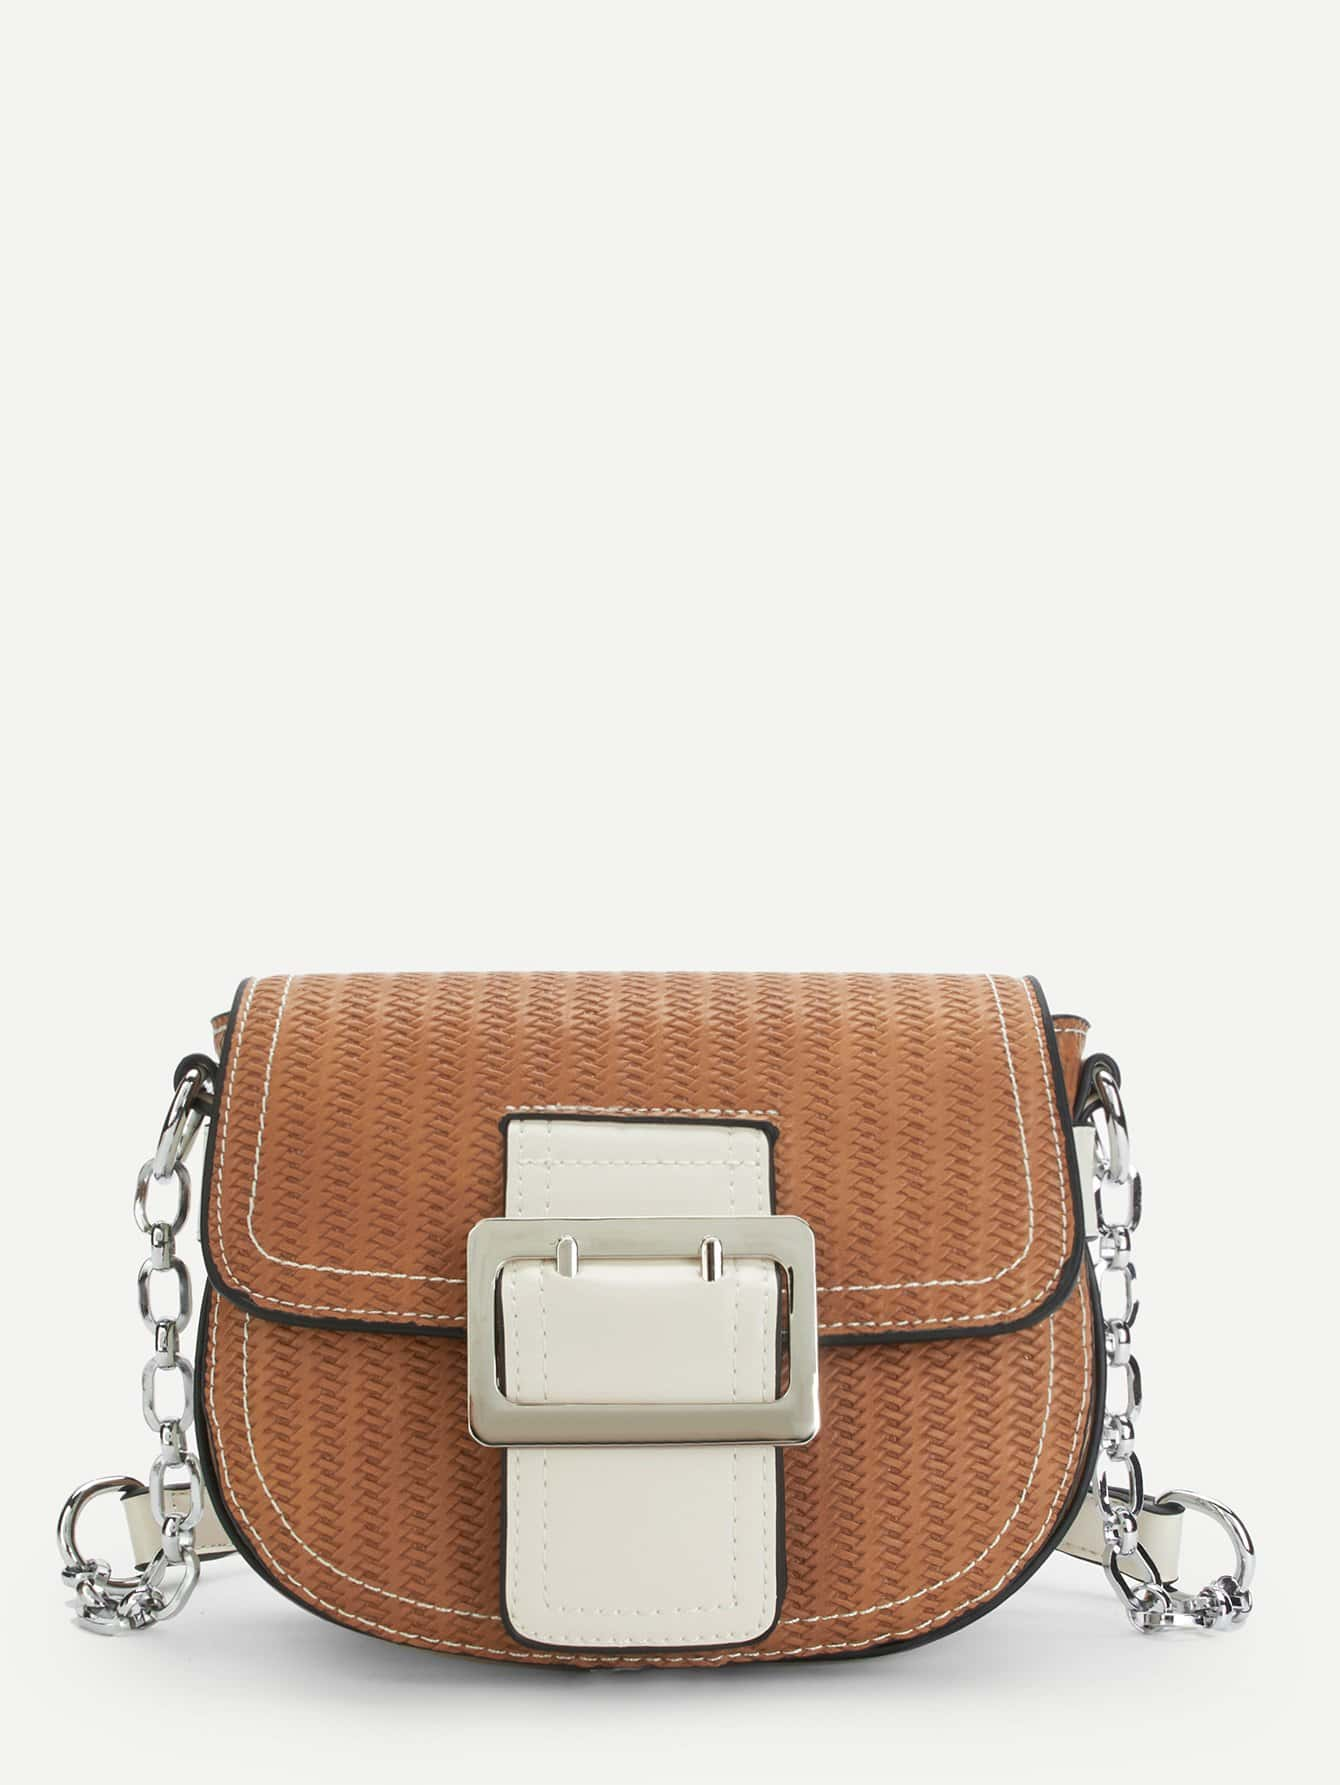 Buckle Front Saddle Chain Bag buckle front clear chain bag